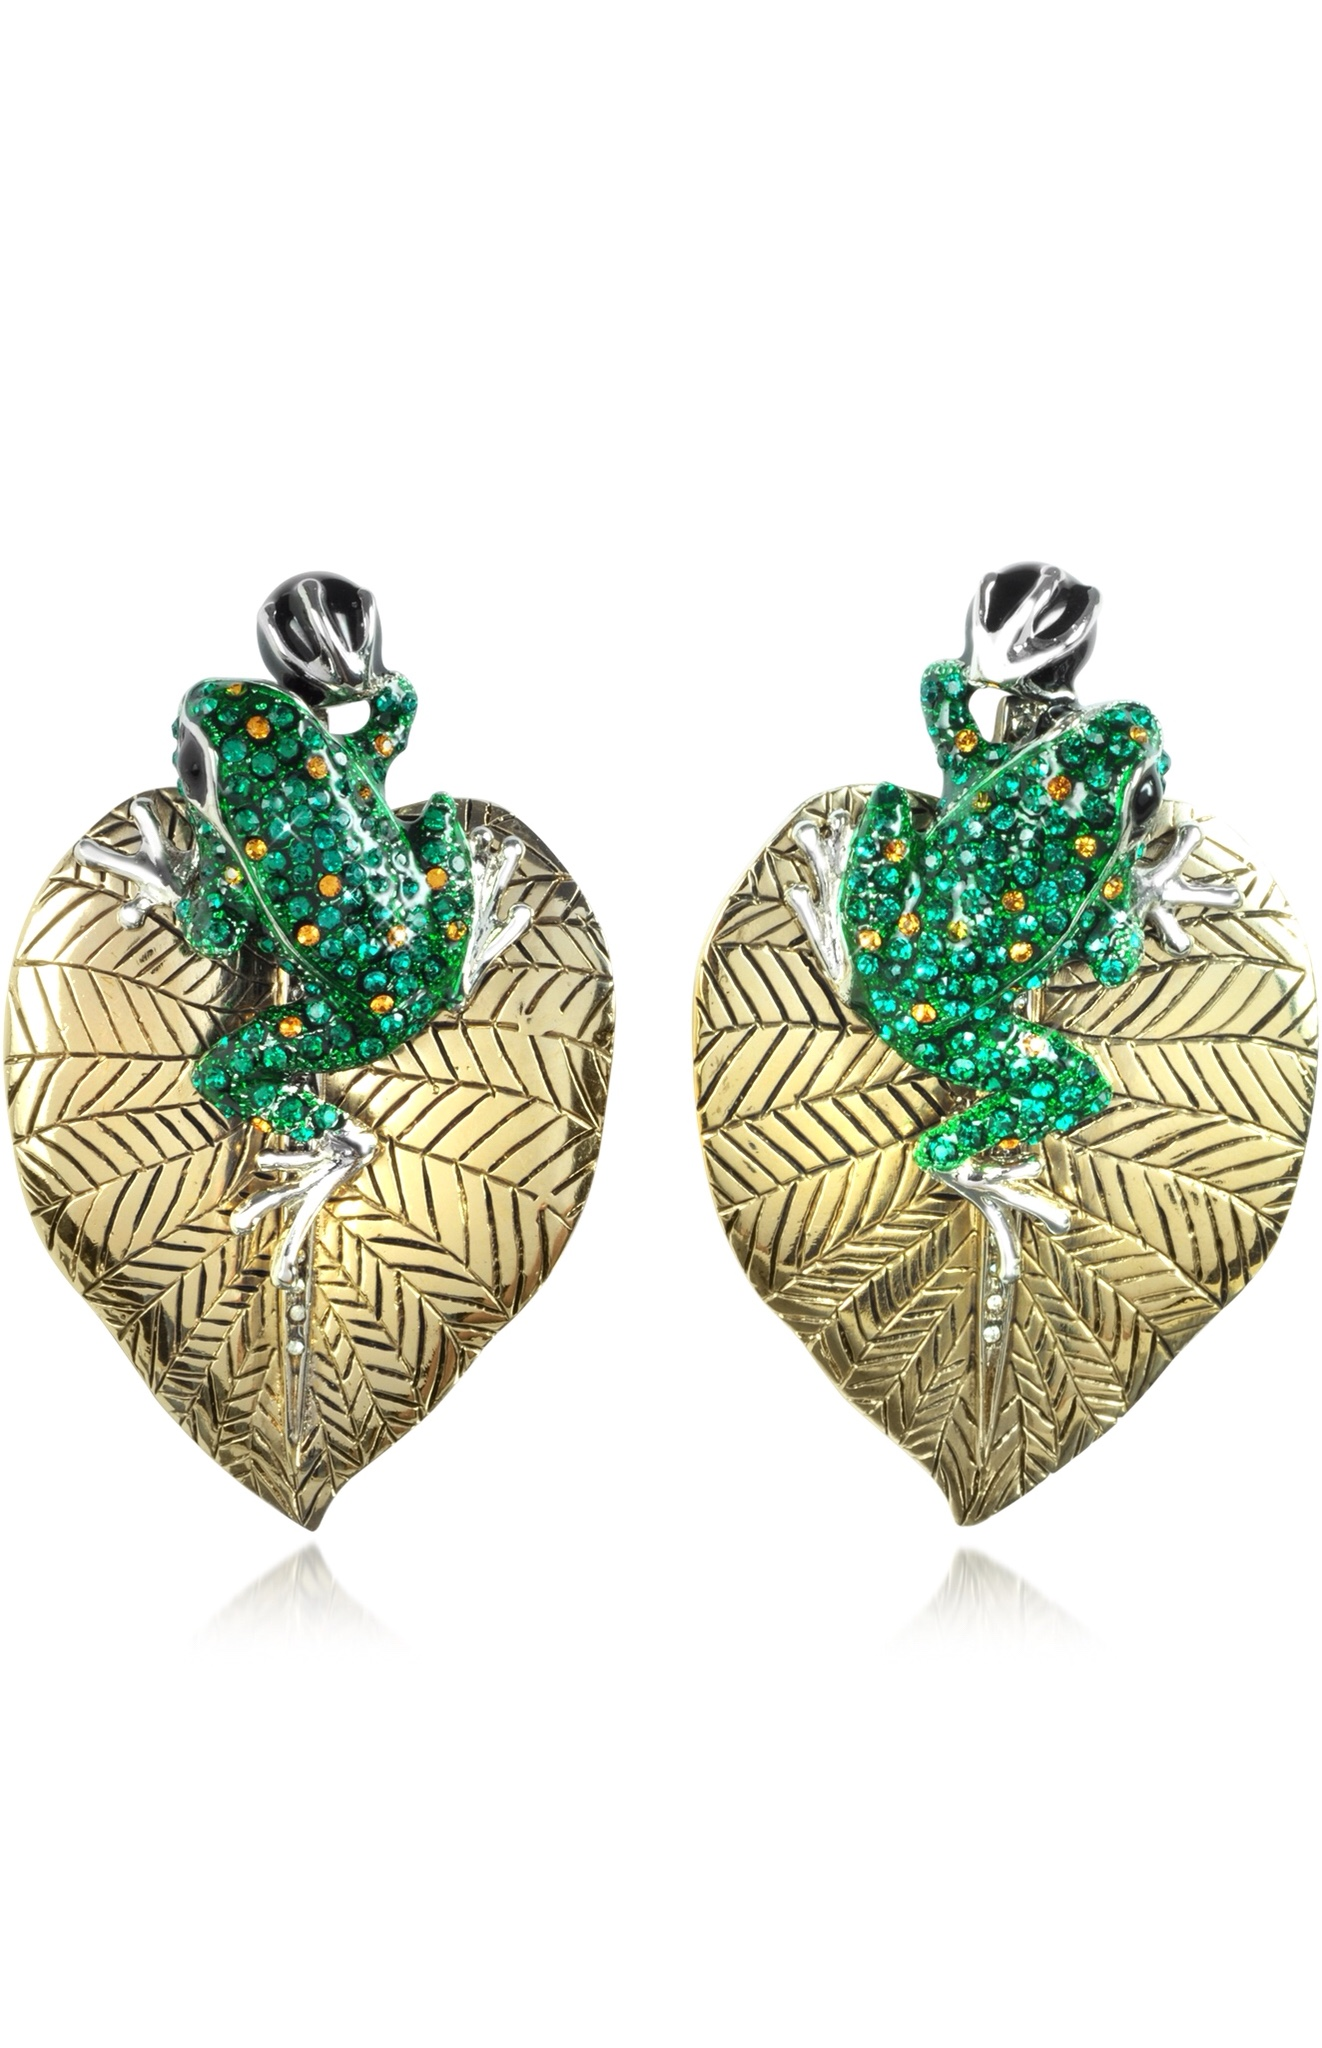 Animal Kingdom Clip on Earrings w/Crystal by ROBERTO CAVALLI